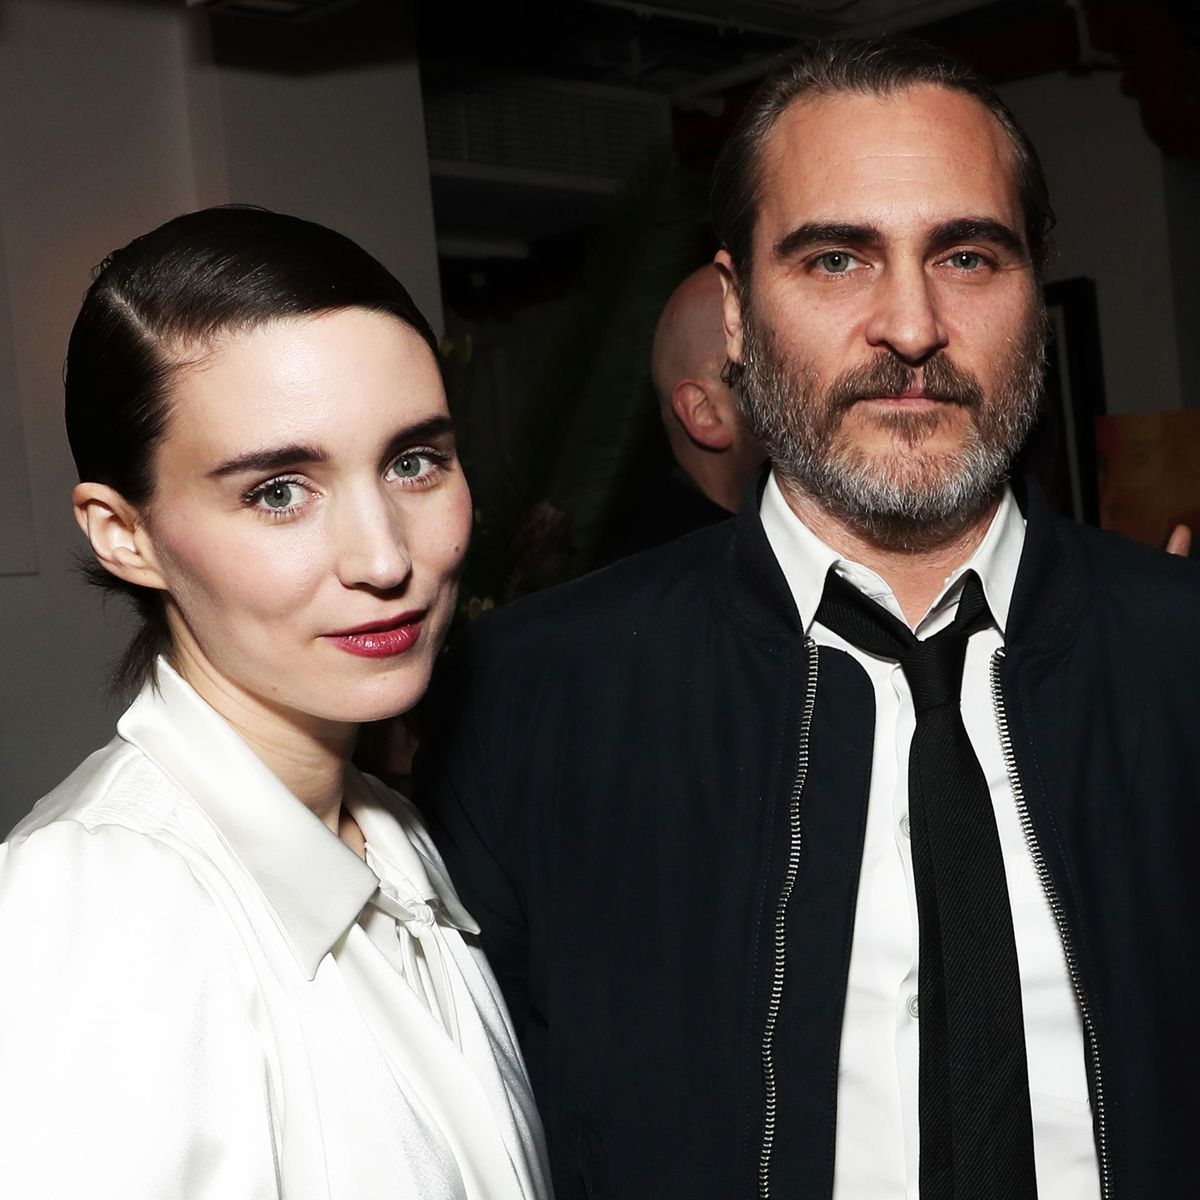 Rooney Mara Is Pregnant Expecting Child With Joaquin Phoenix